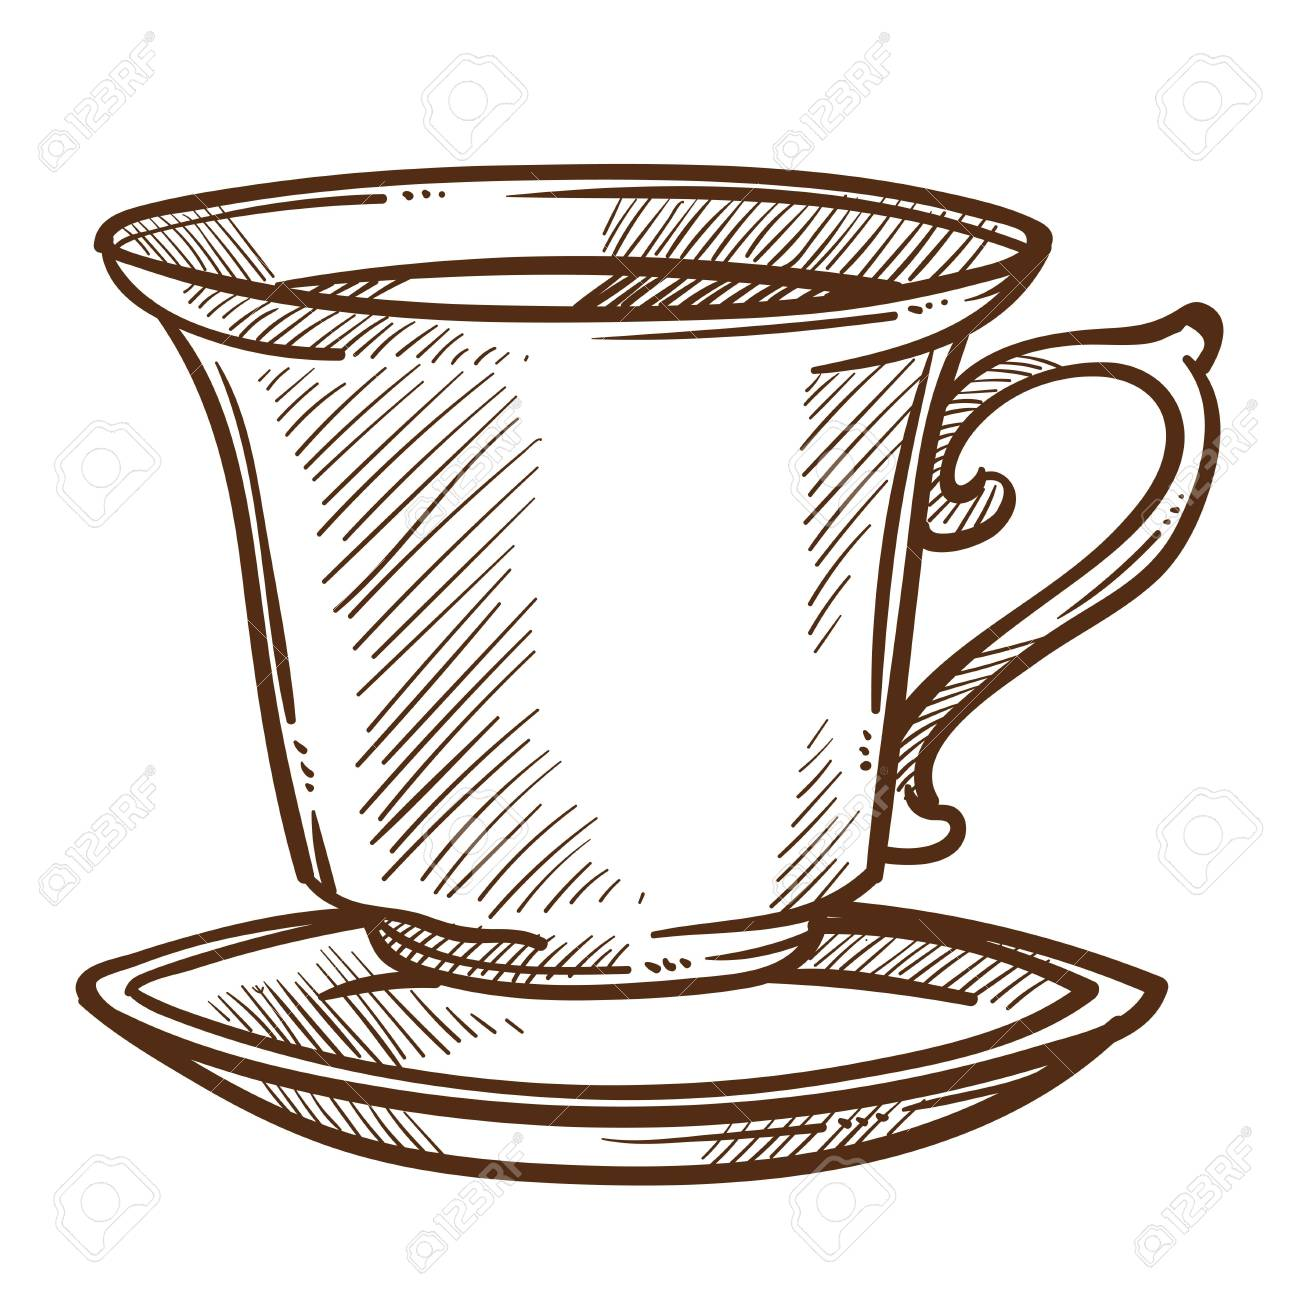 Hot Drink Coffee Or Tea Cup On Saucer Isolated Sketch Vector Royalty Free Cliparts Vectors And Stock Illustration Image 124856143